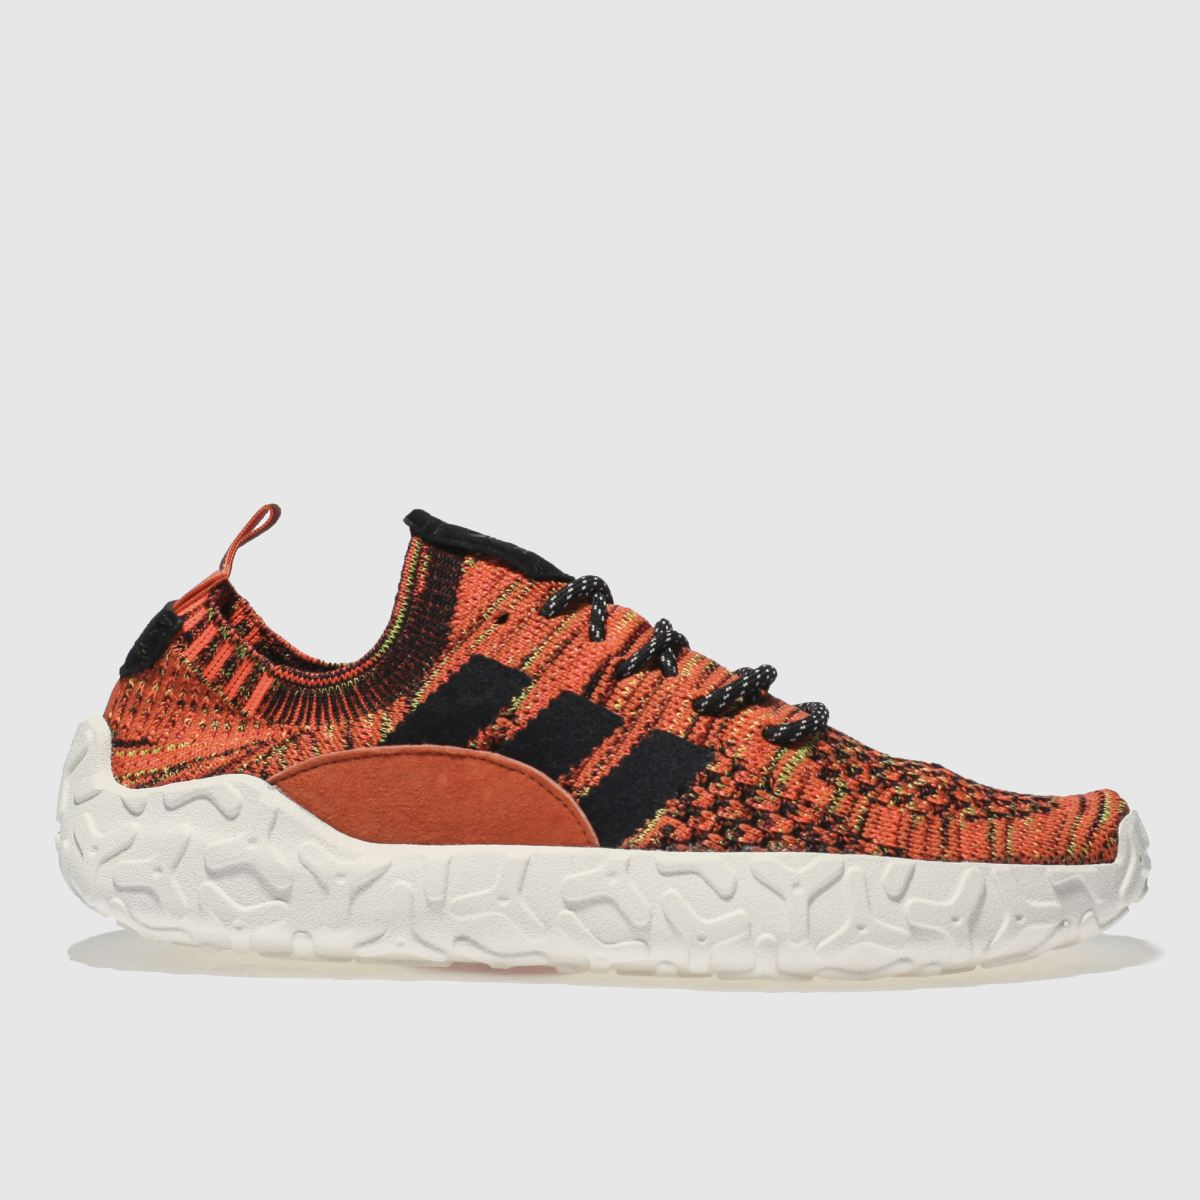 buy popular 4a6b4 2ff2d Adidas Orange Atric F22 Primeknit Trainers  £44.99  Port